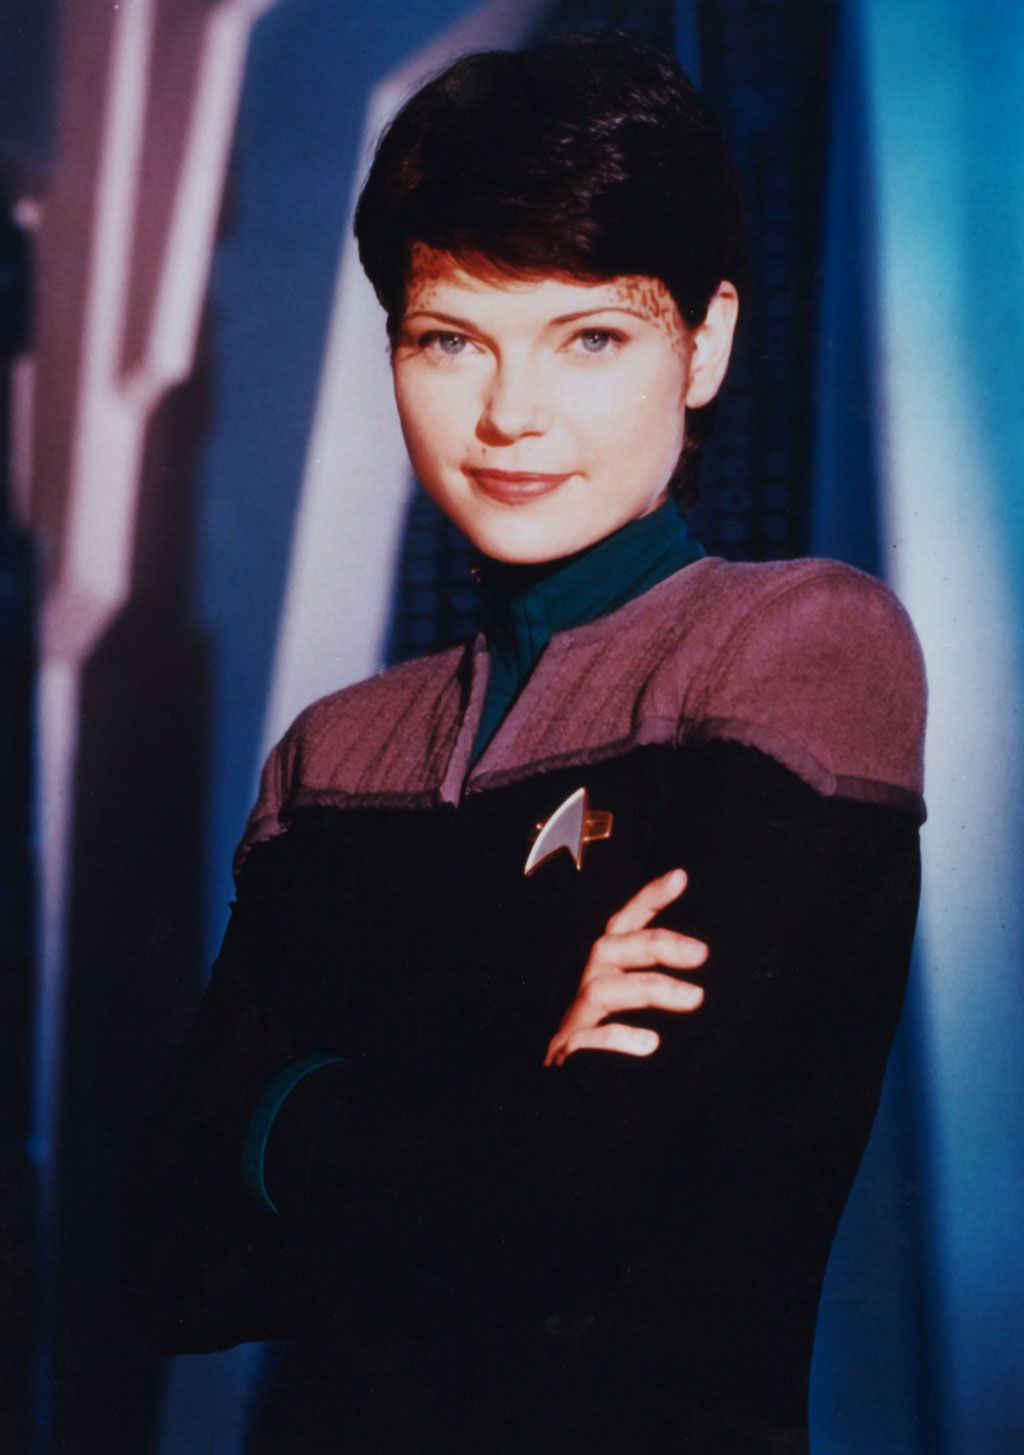 Ezri Dax was a joined Trill and the ninth host of the Dax symbiont. She served as counselor aboard Deep Space 9, beginning in 2375. She was joined to Dax shortly after the death of its previous host, Jadzia.